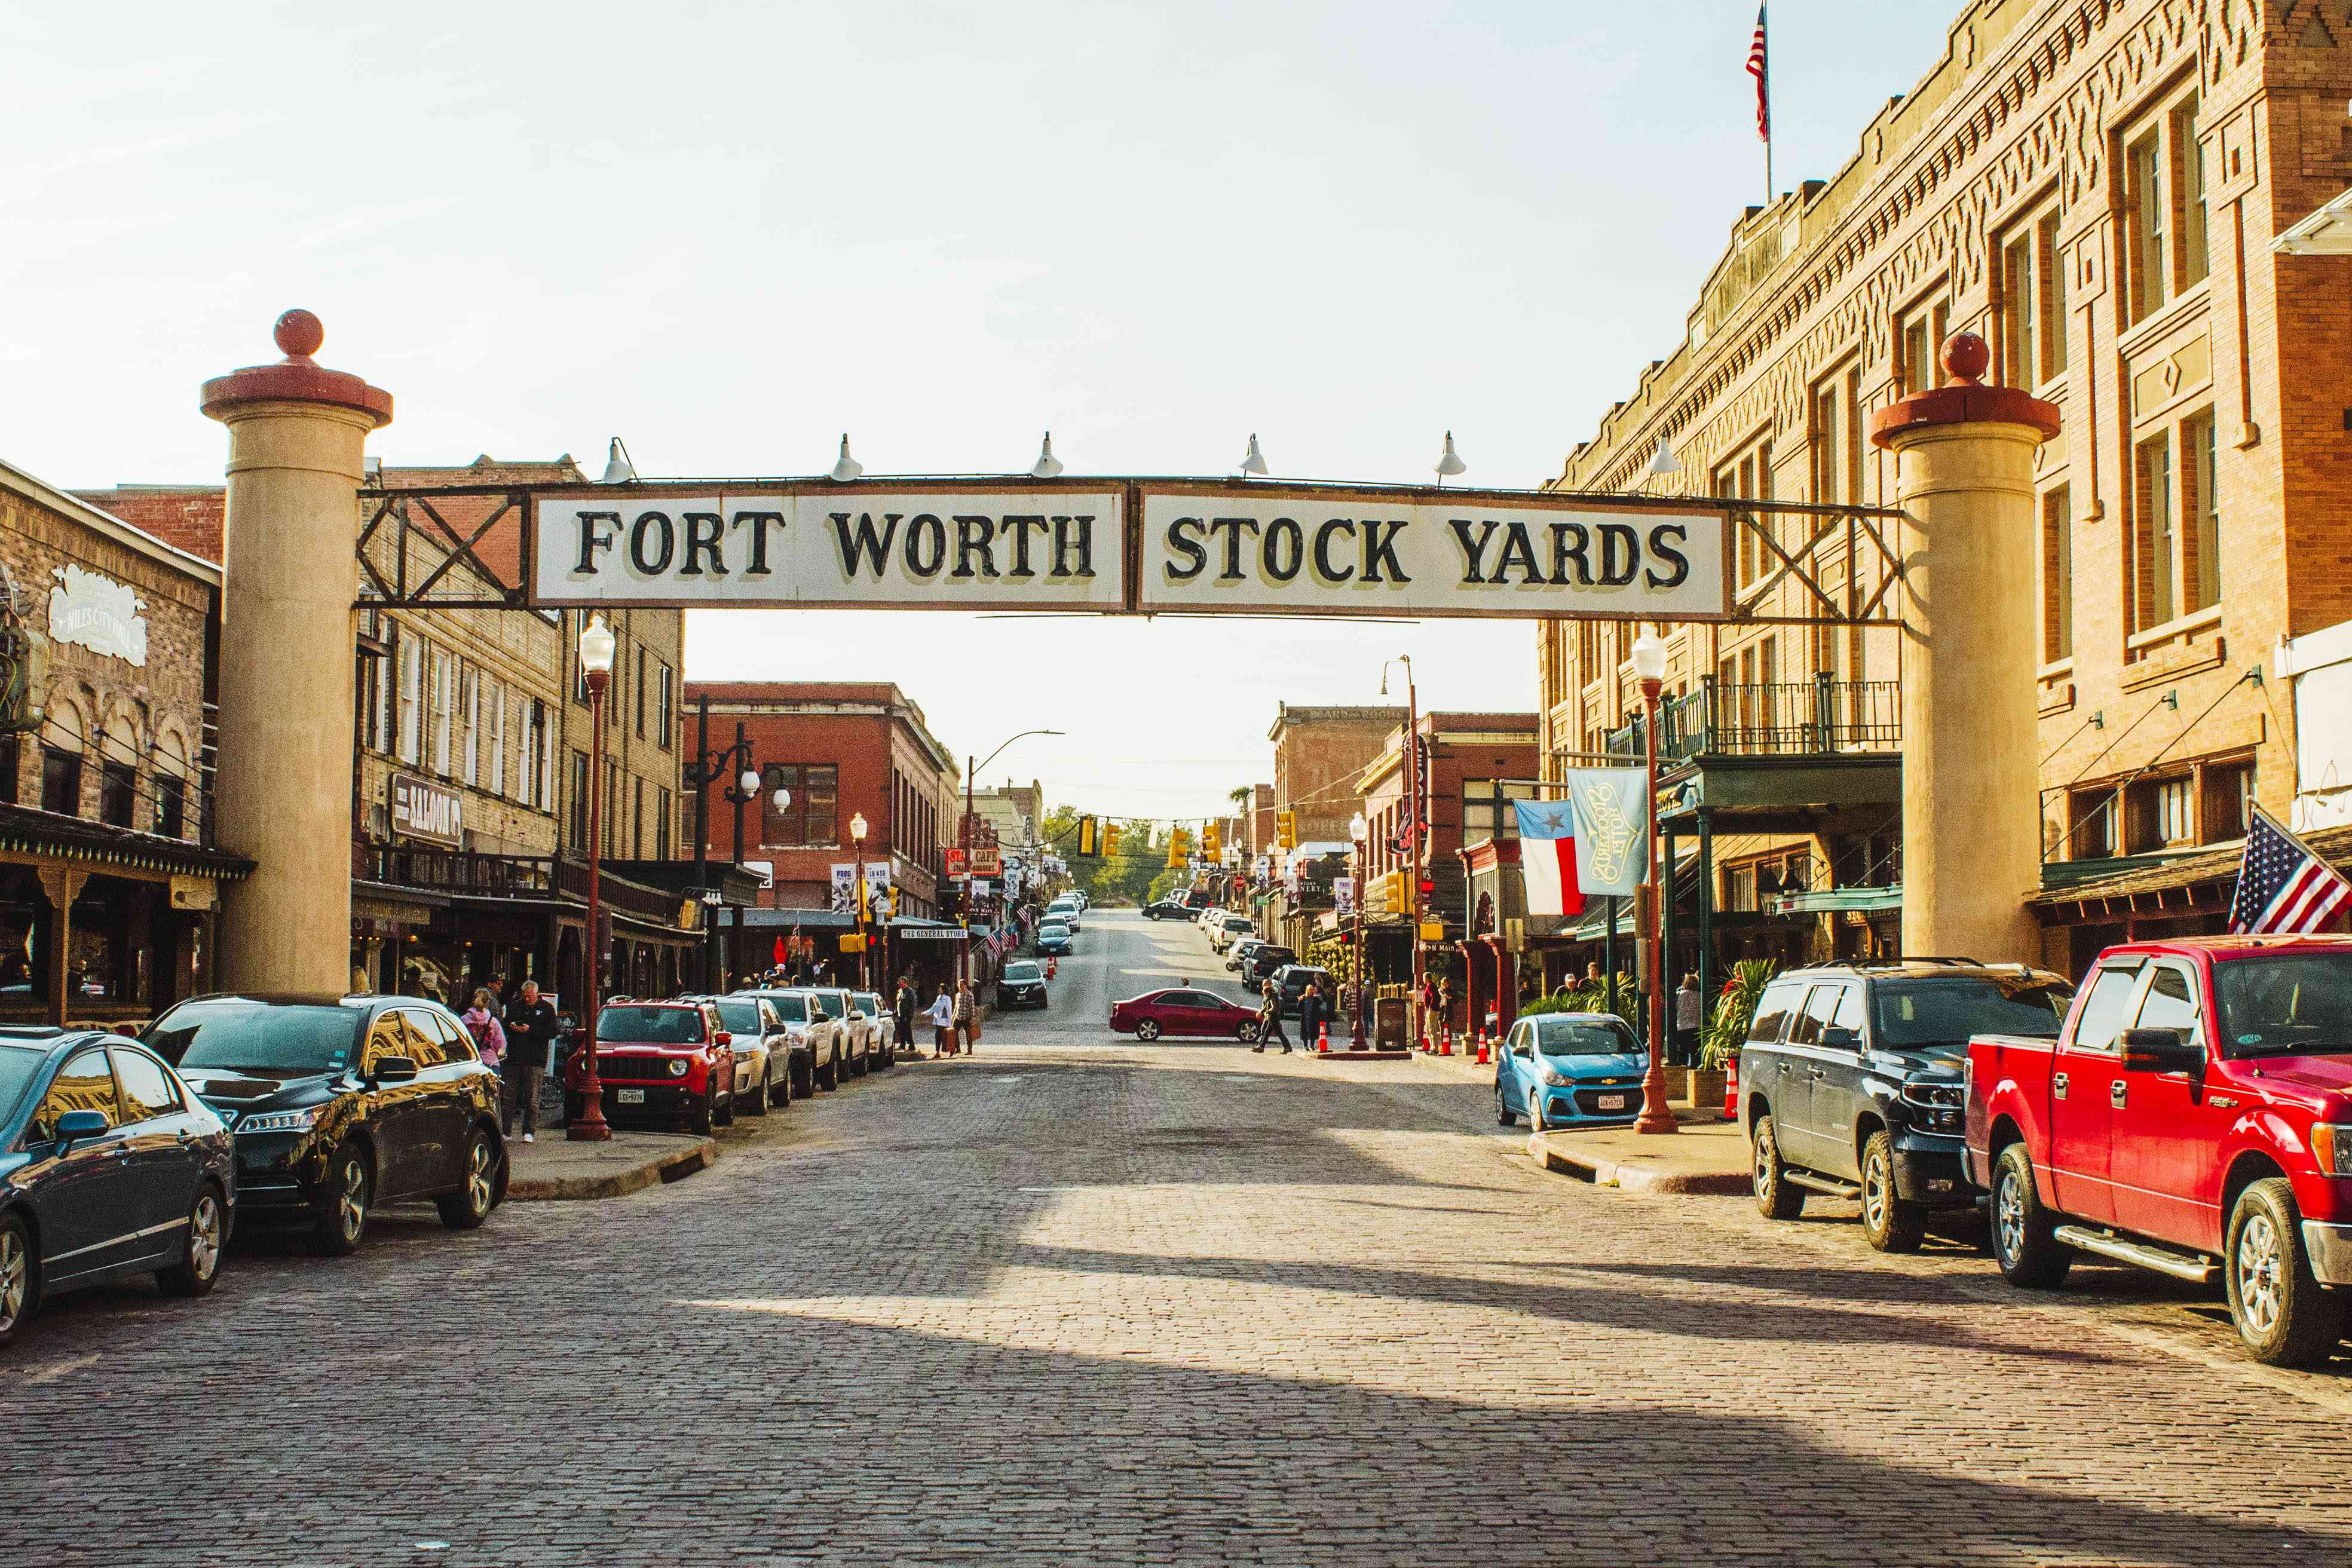 Sign for Fort Worth Stock Yards